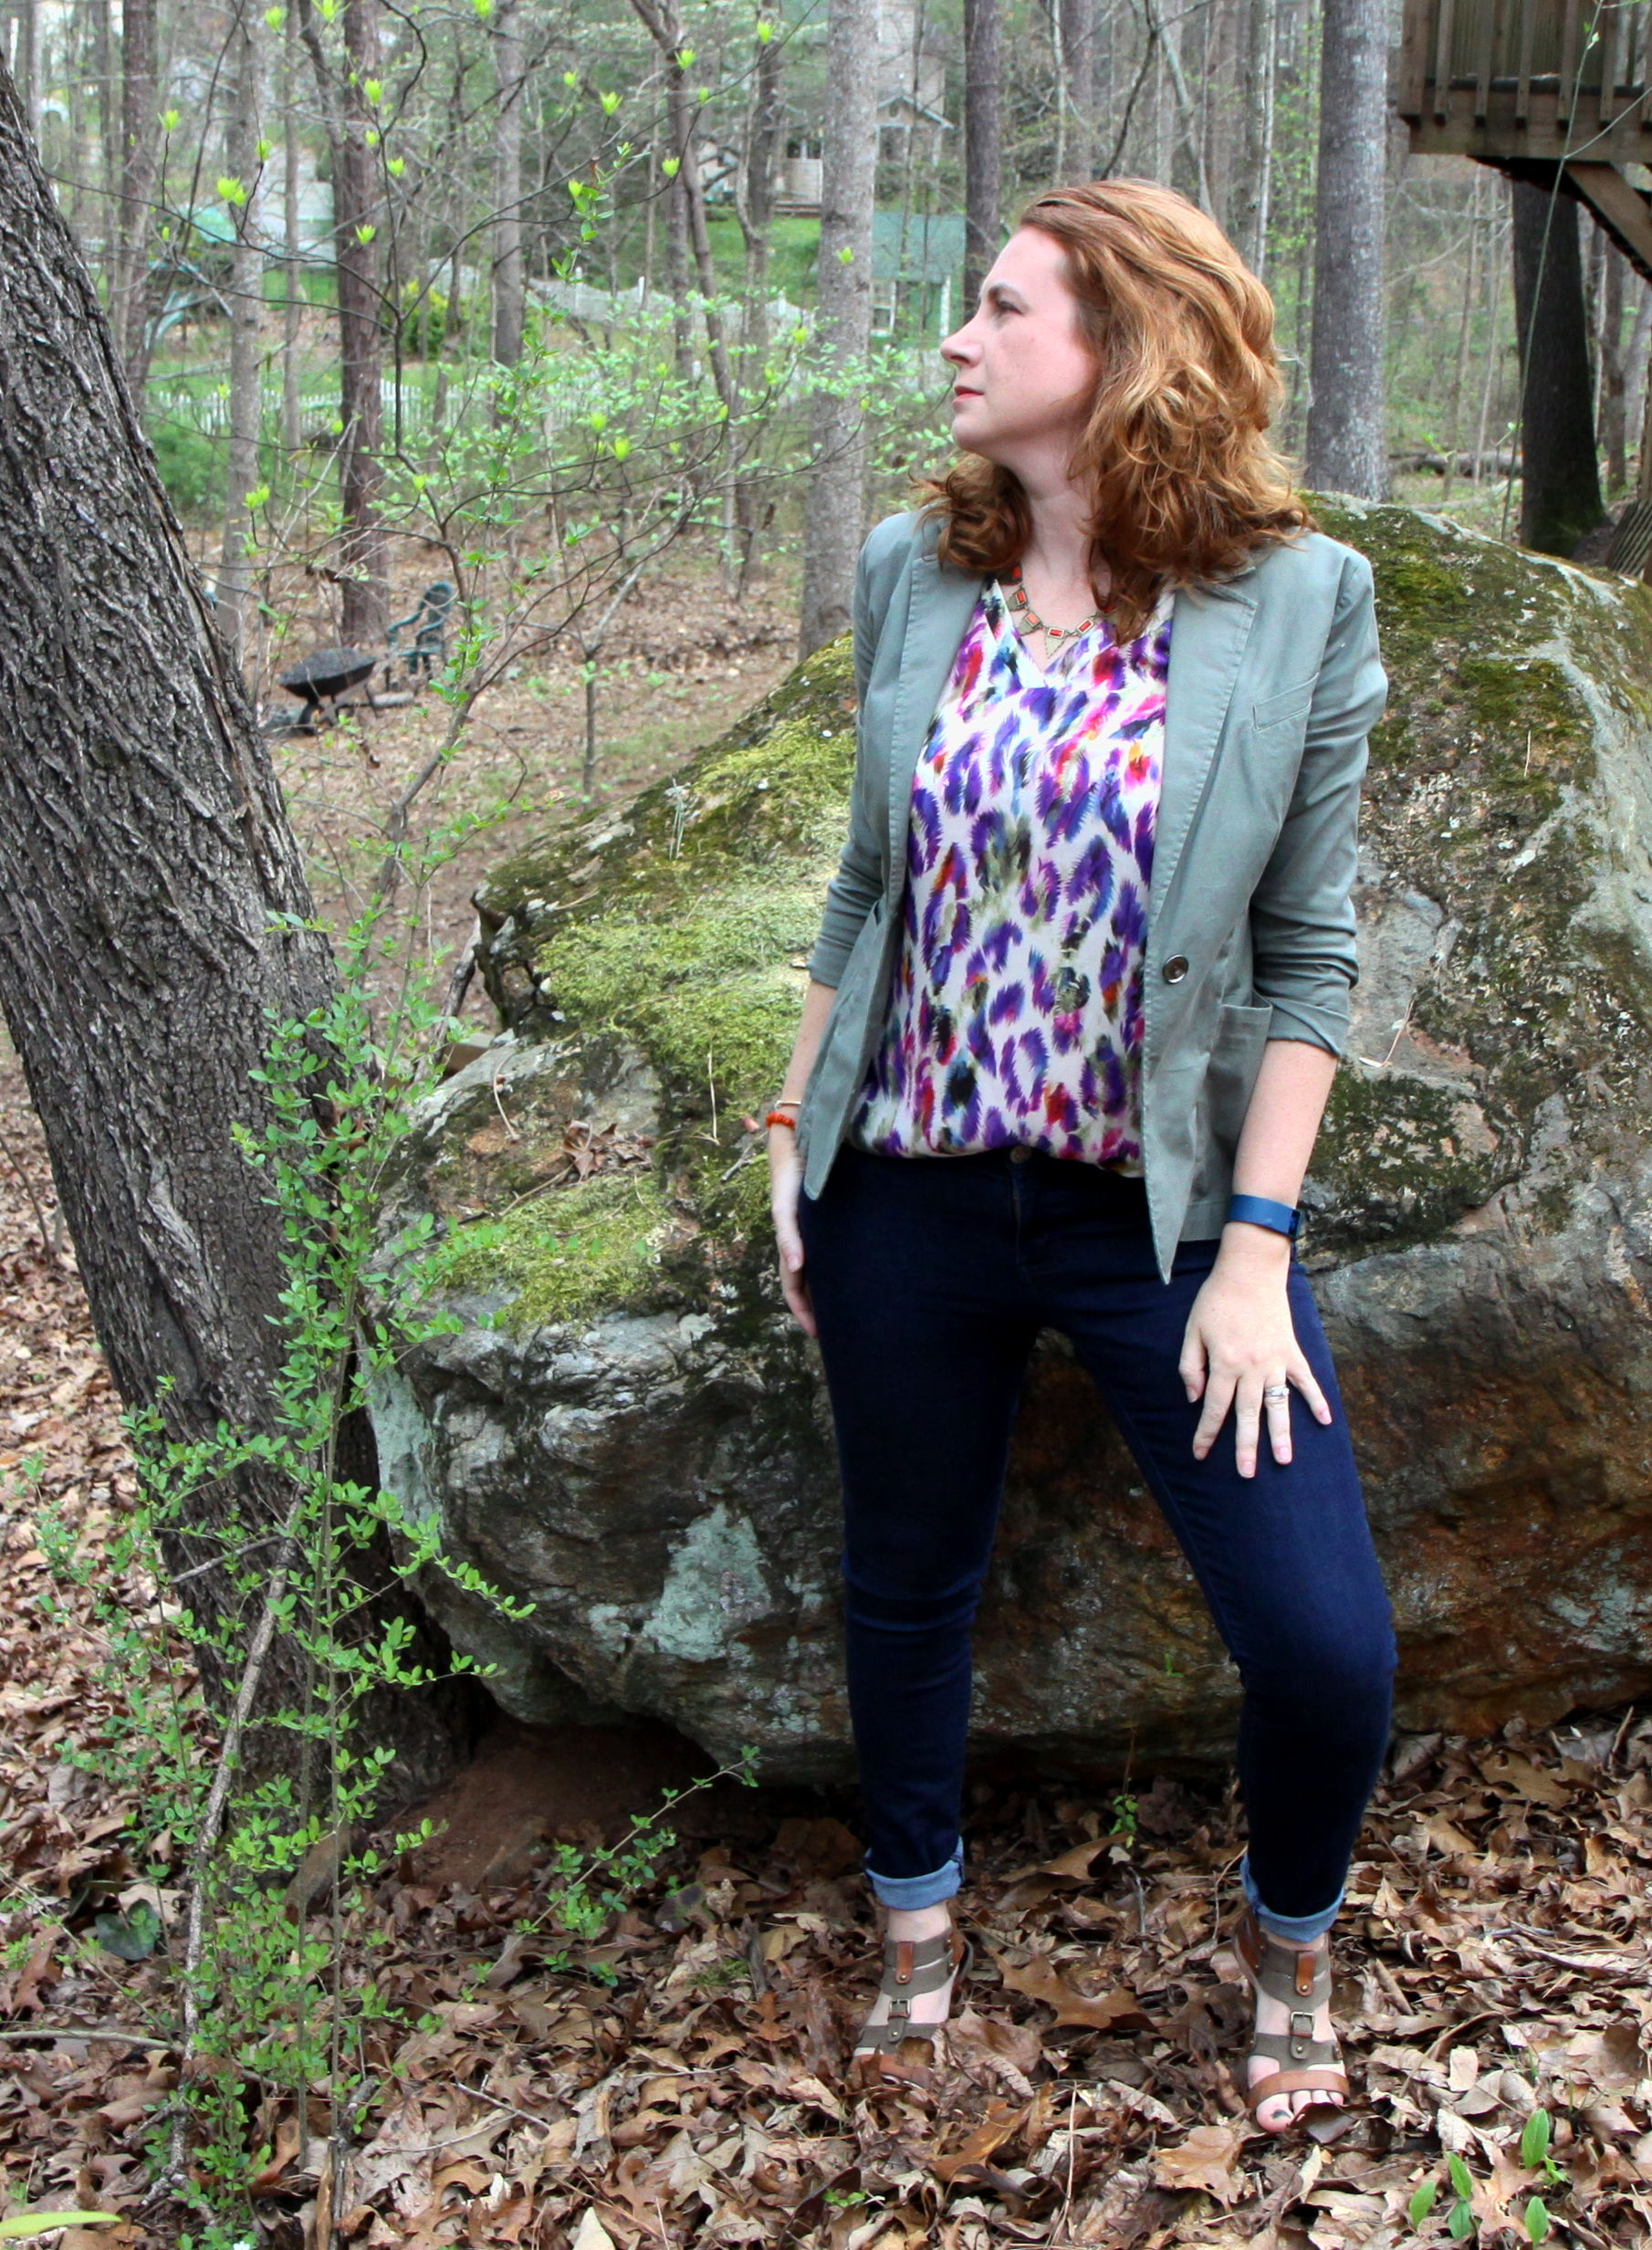 Outfit:  Plume Top  from cabi Spring 2016. Knight Skinny Jean from cabi Fall 2015. Olive Jacket from cabi Spring 2015.  Metal Statement Neck with Cabs  from Target. Orange Quartz bracelet by  Solid Treasures . Shoes Older, not sure of brand.